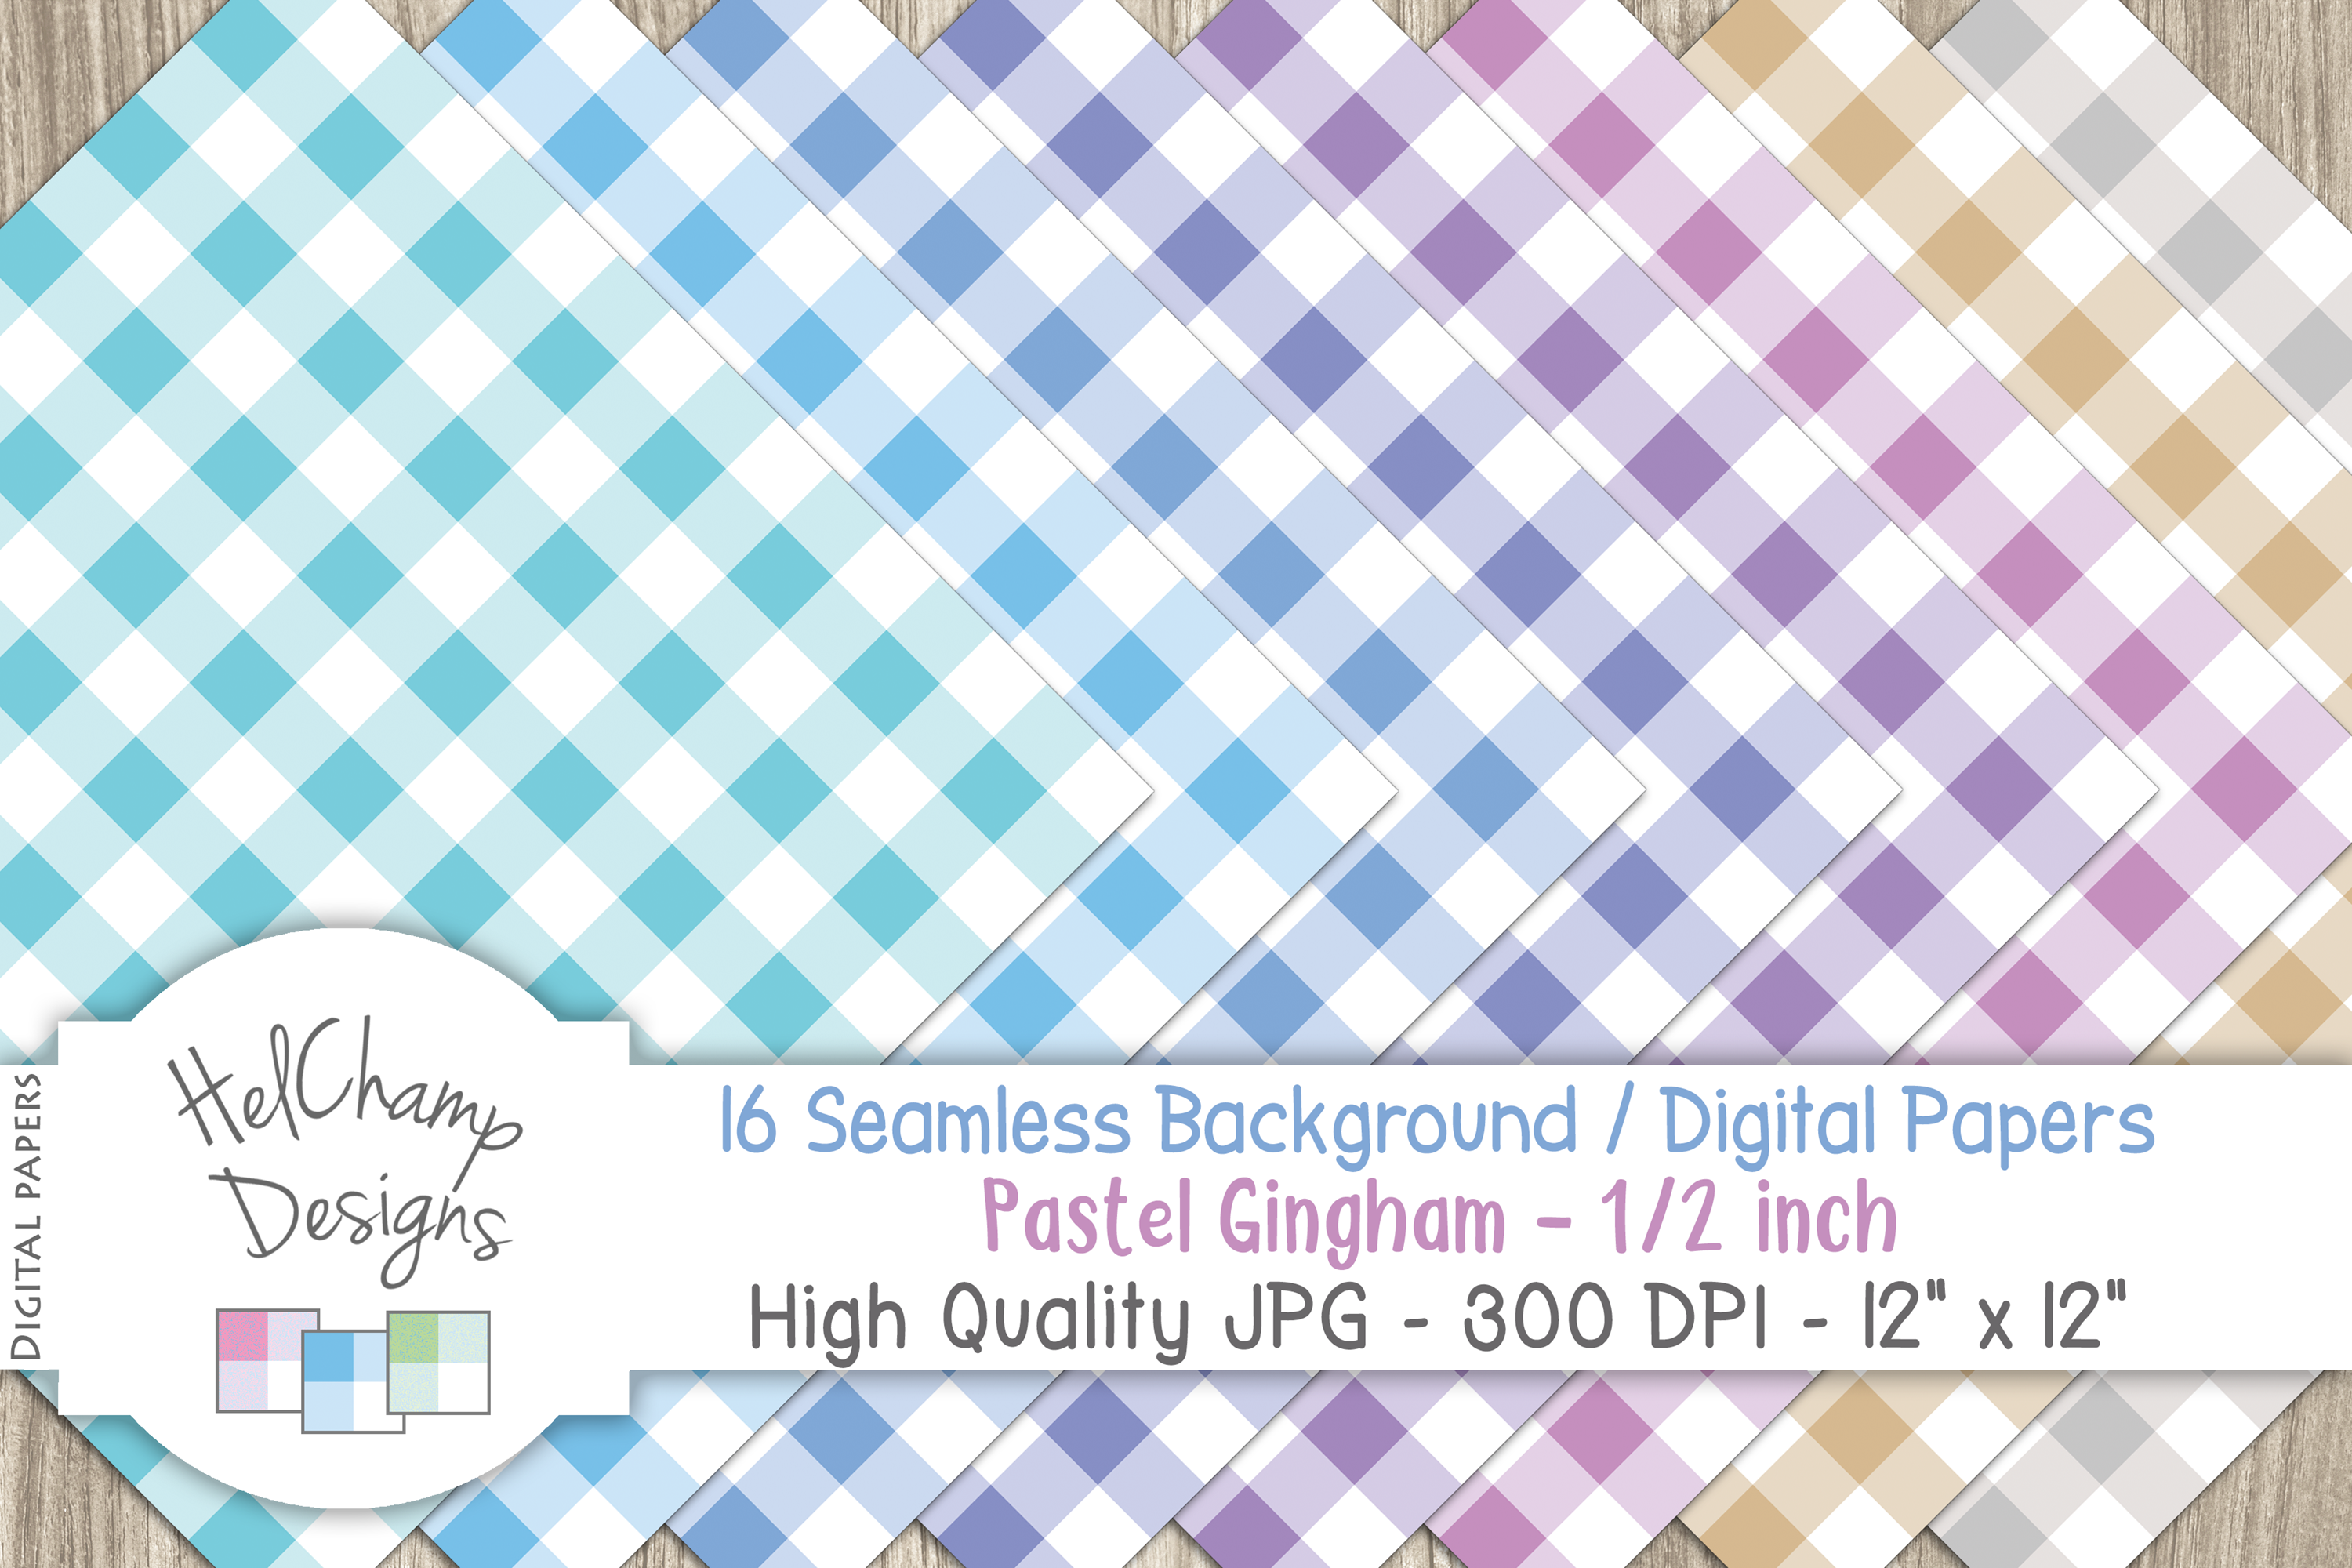 16 seamless Digital Papers - Pastel Gingham 1/2 inch - HC004 example image 4